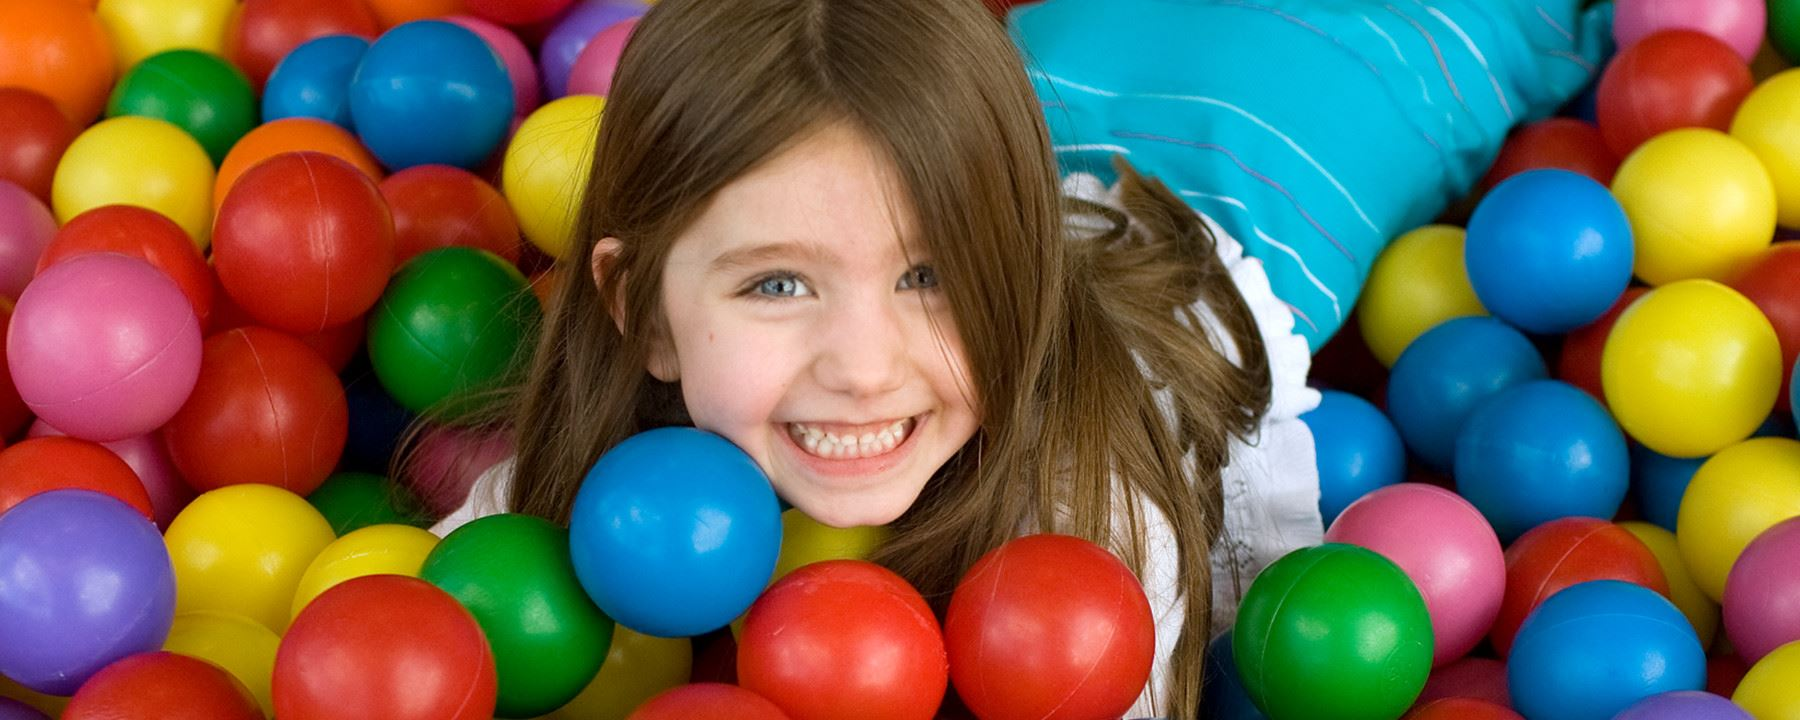 Little girl playing in ball pit